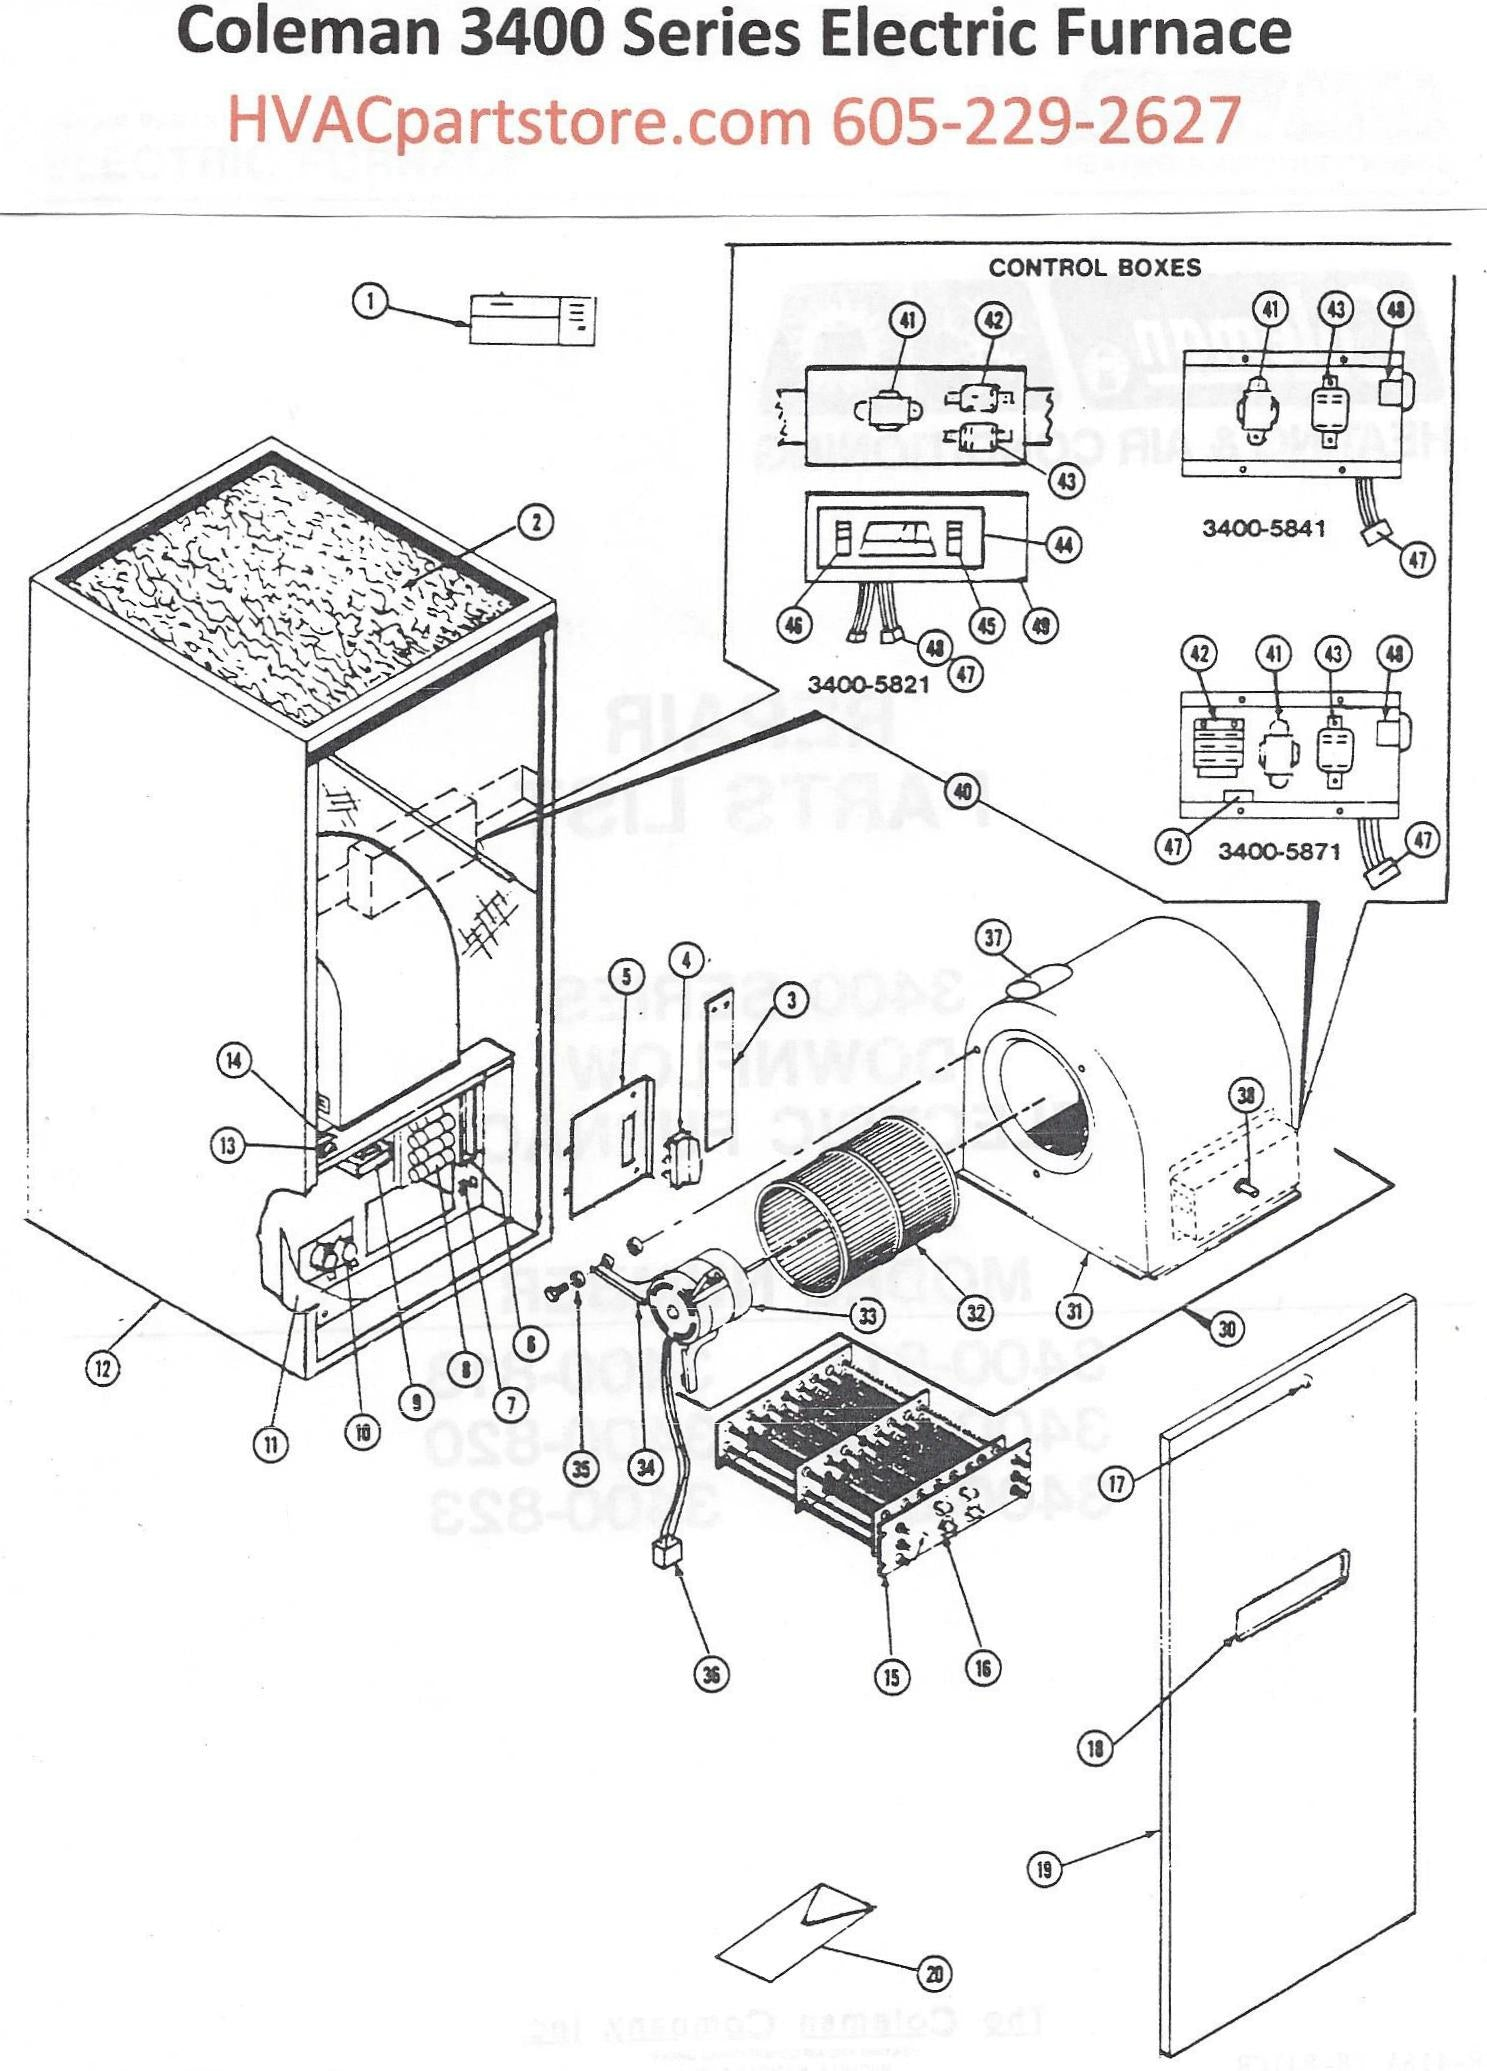 3400 815 coleman electric furnace parts hvacpartstore click here to view an installation manual which includes wiring diagrams